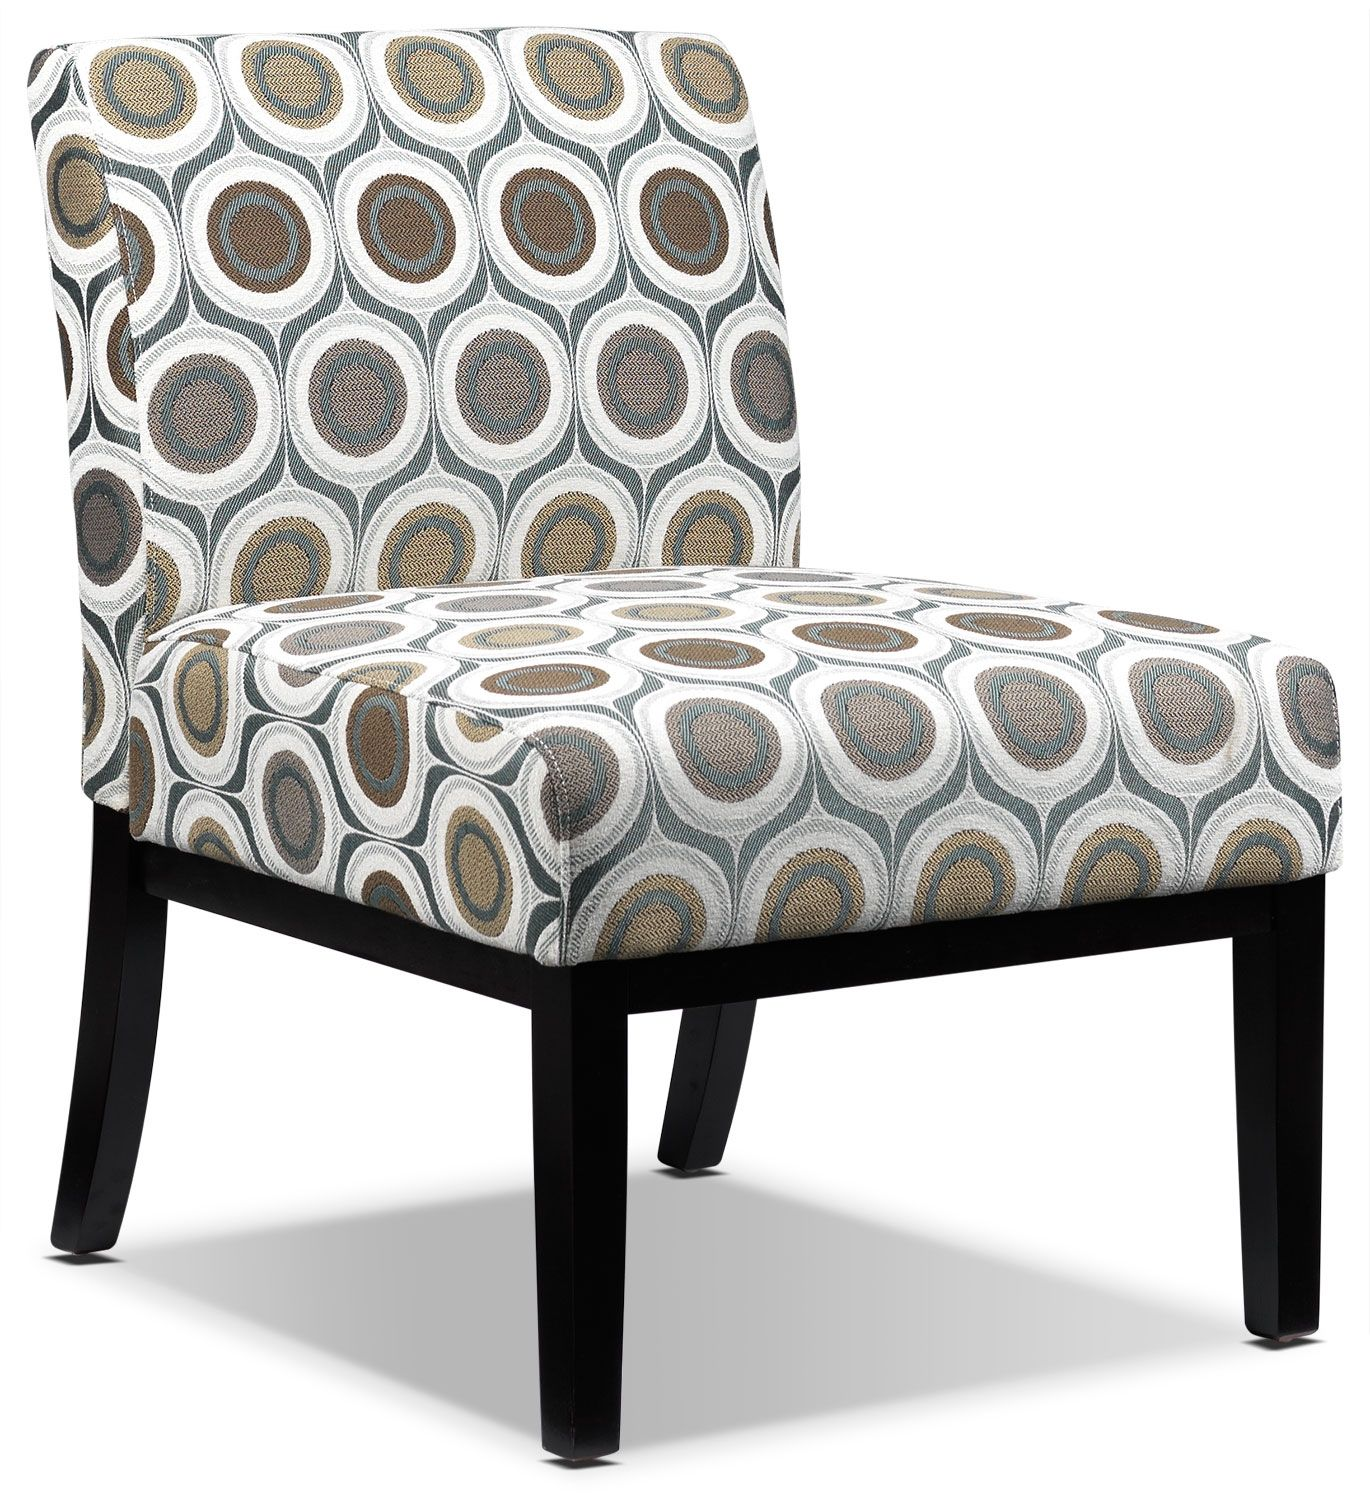 Leons Furniture Kitchener Accent Chair Living Room Furniture Daphne Fabric Accent Chair